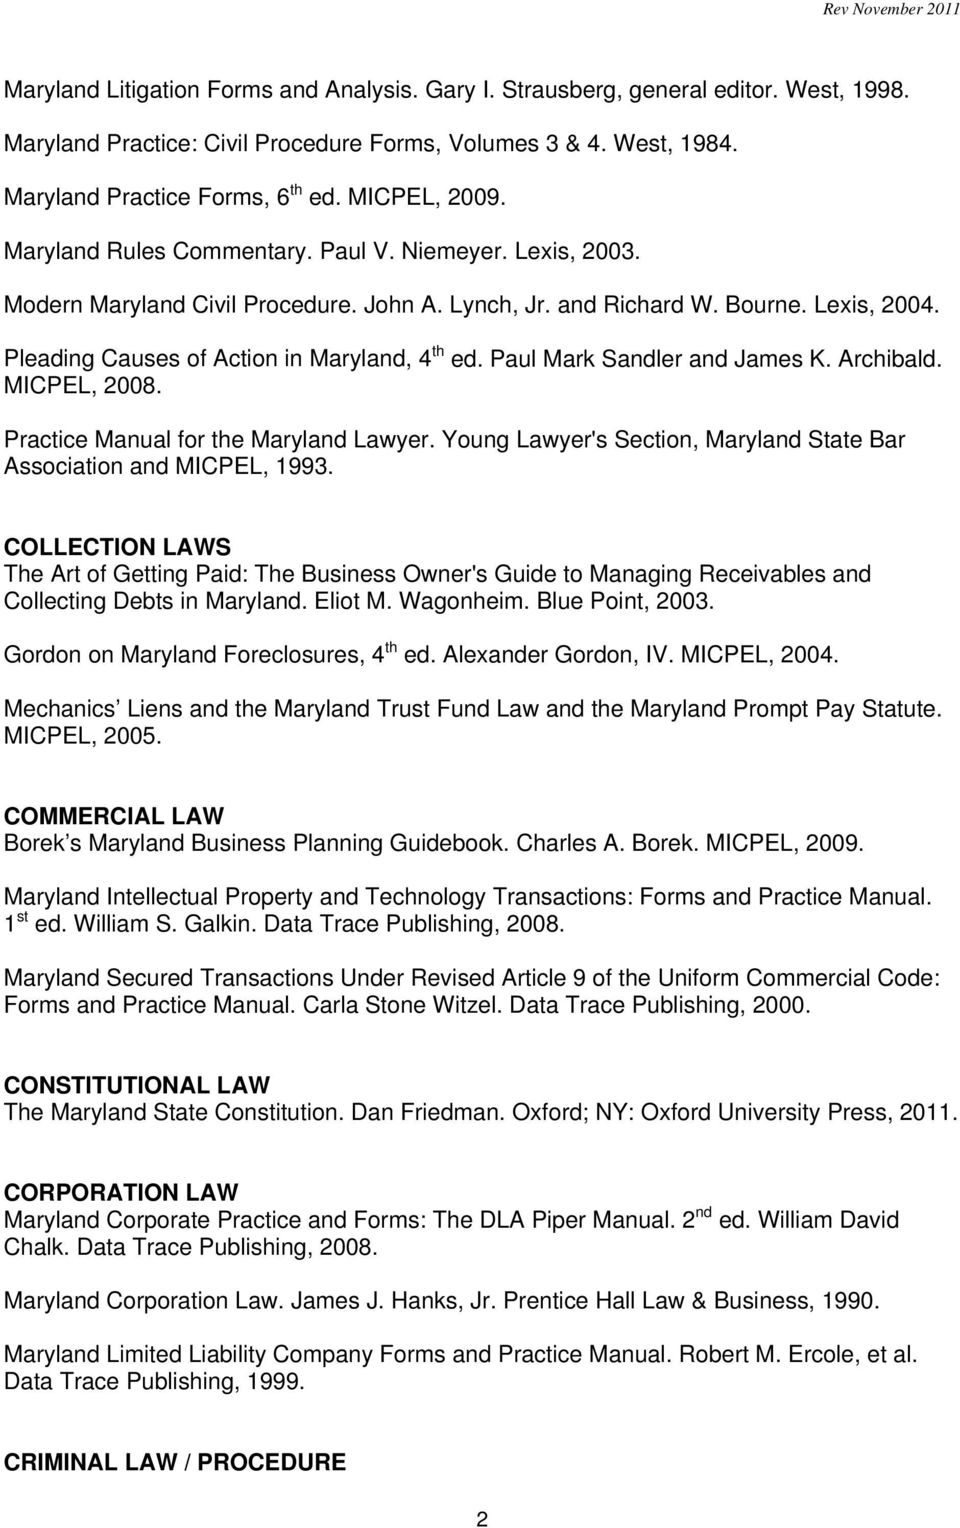 Recommended Maryland Treatises For The Core Collection Compiled By